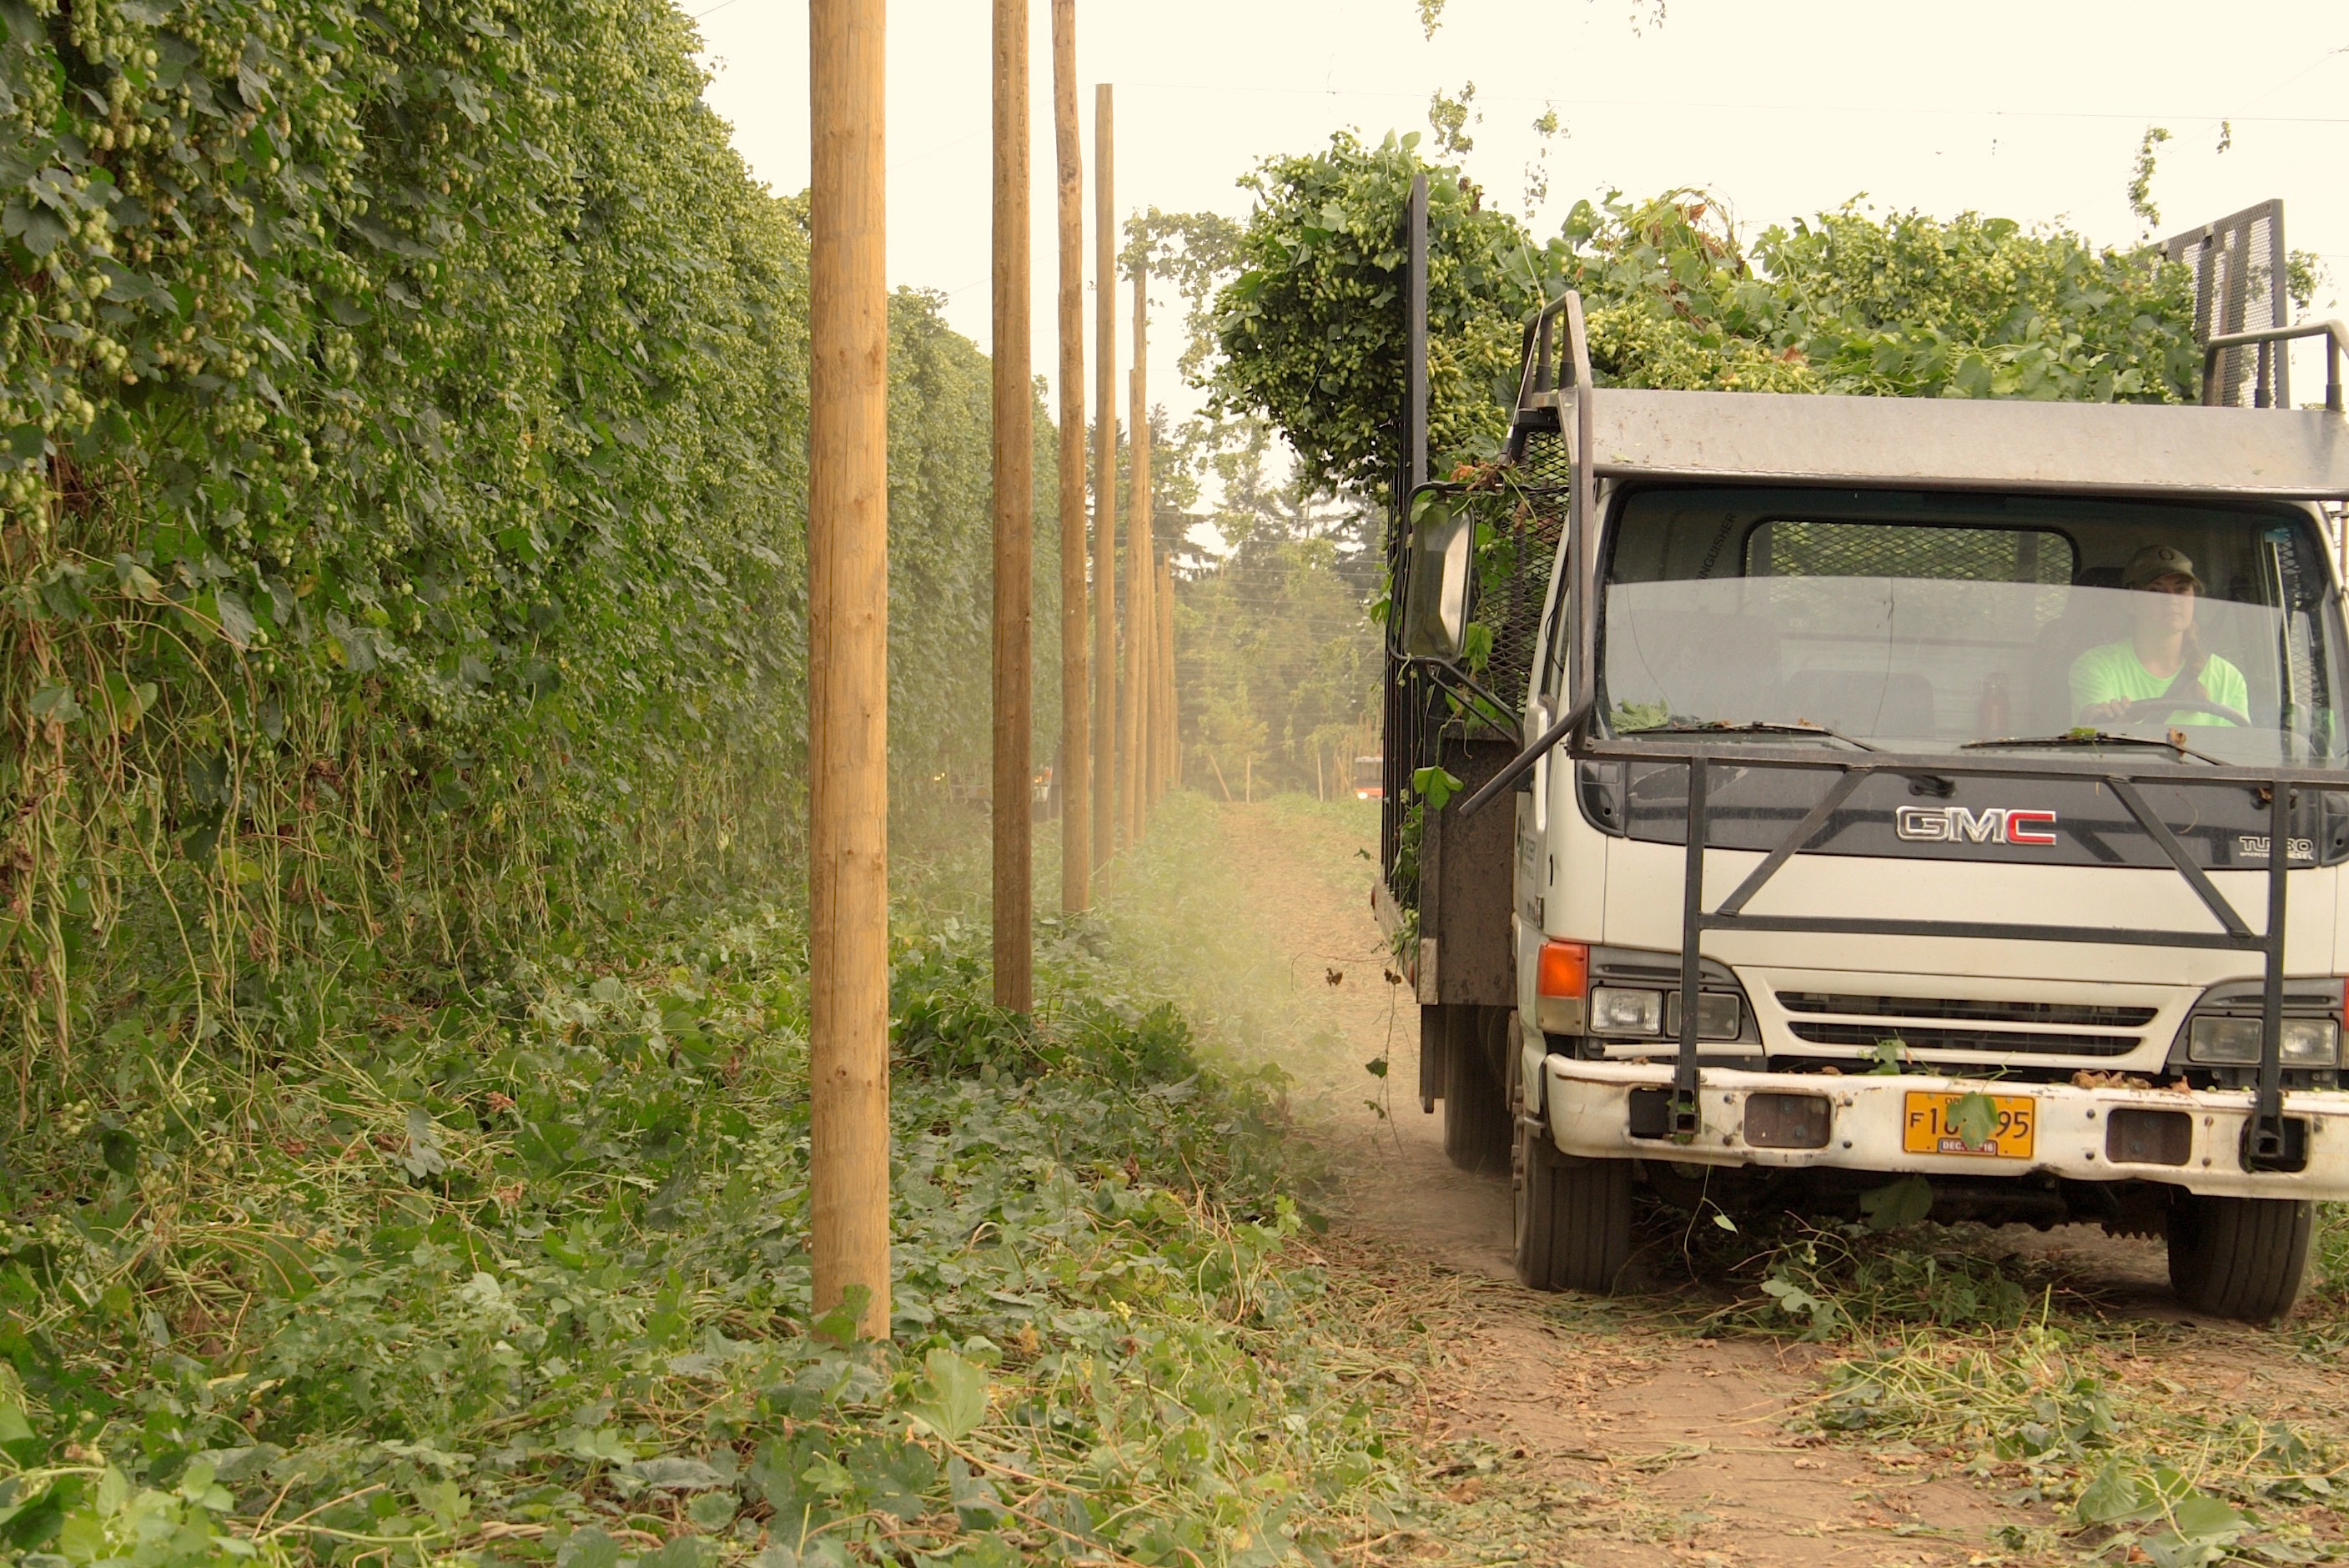 A-Crosby-Hop-Farm-truck-leaving-the-hop-yard-with-freshly-picked-Amarillo-Hops-during-the-2016-harvest.-photo-by-Ryan-Spencer